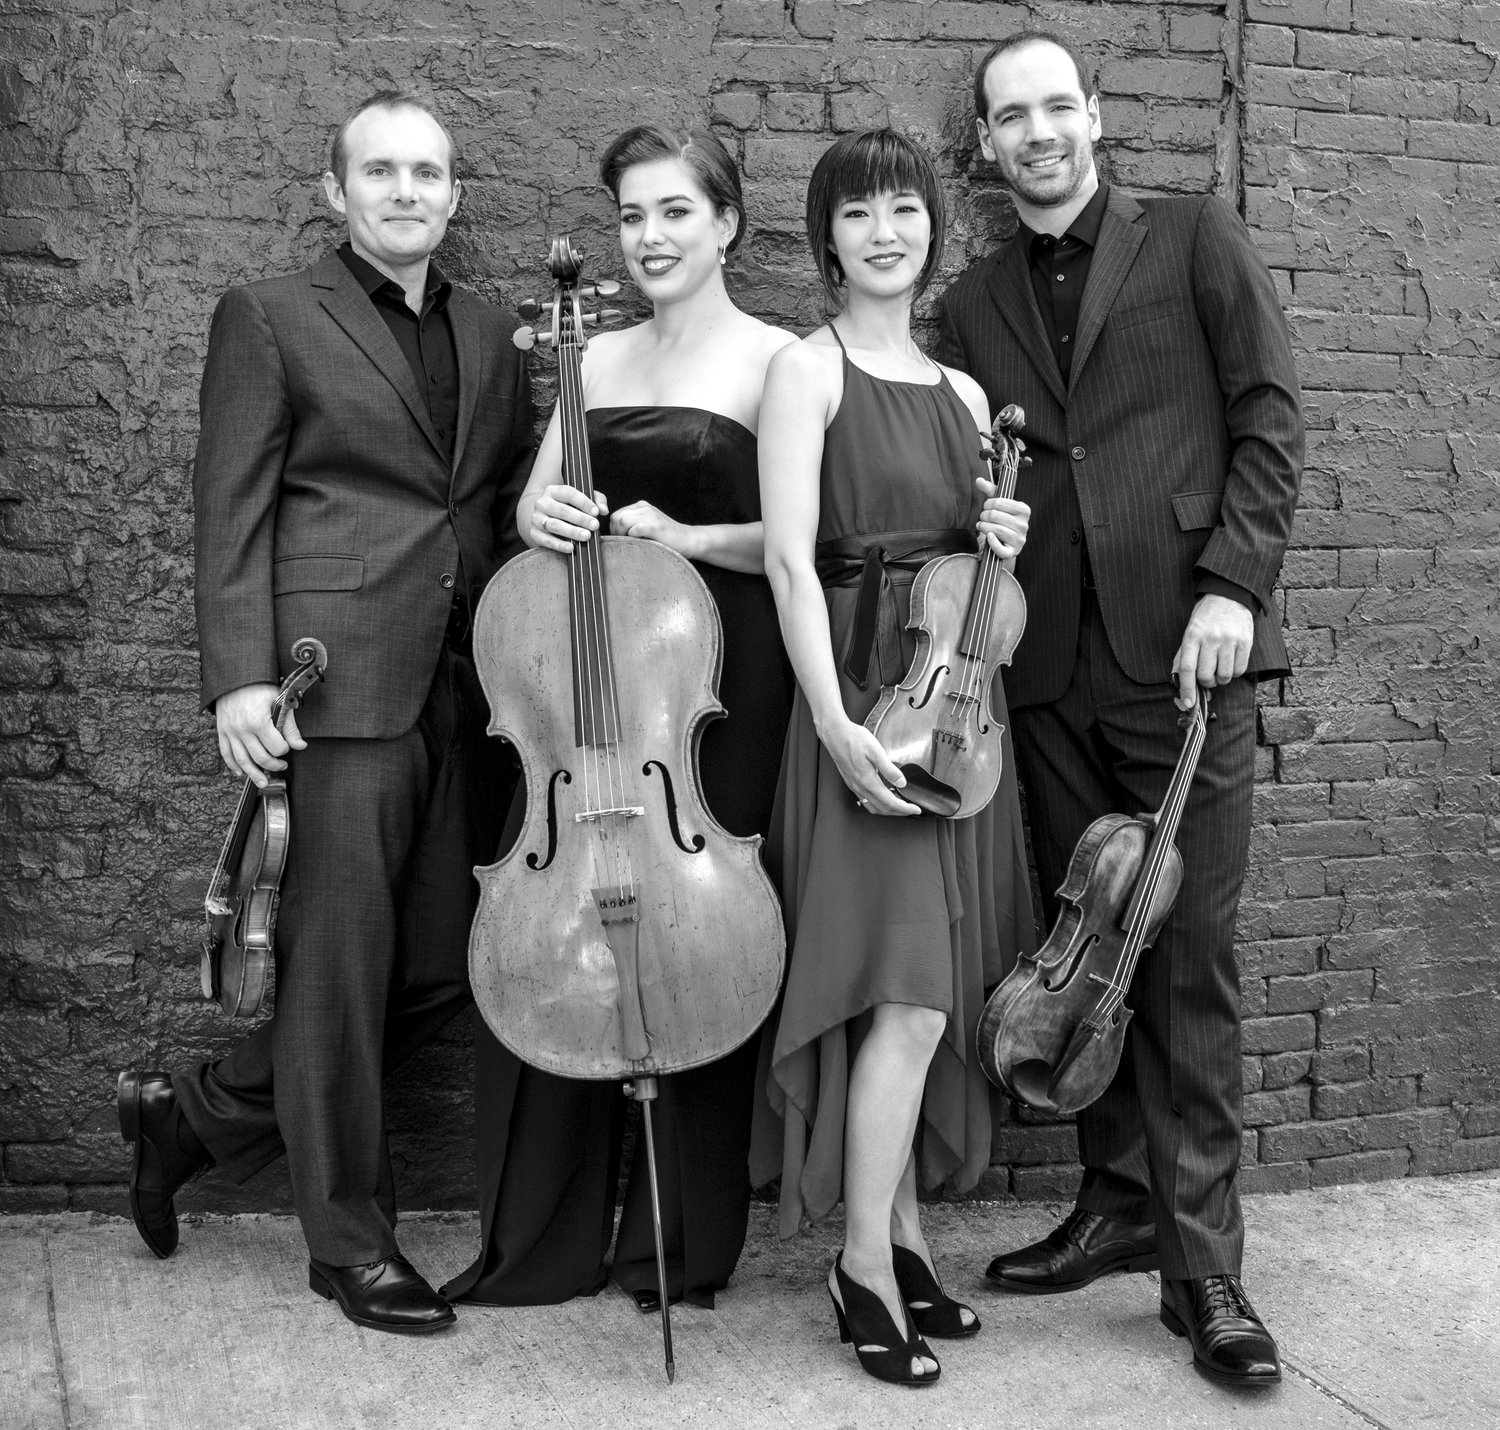 Jasper String Quartet — Presented by Chamber Music Society of Utica on Nov. 18 at 2:30 p.m.